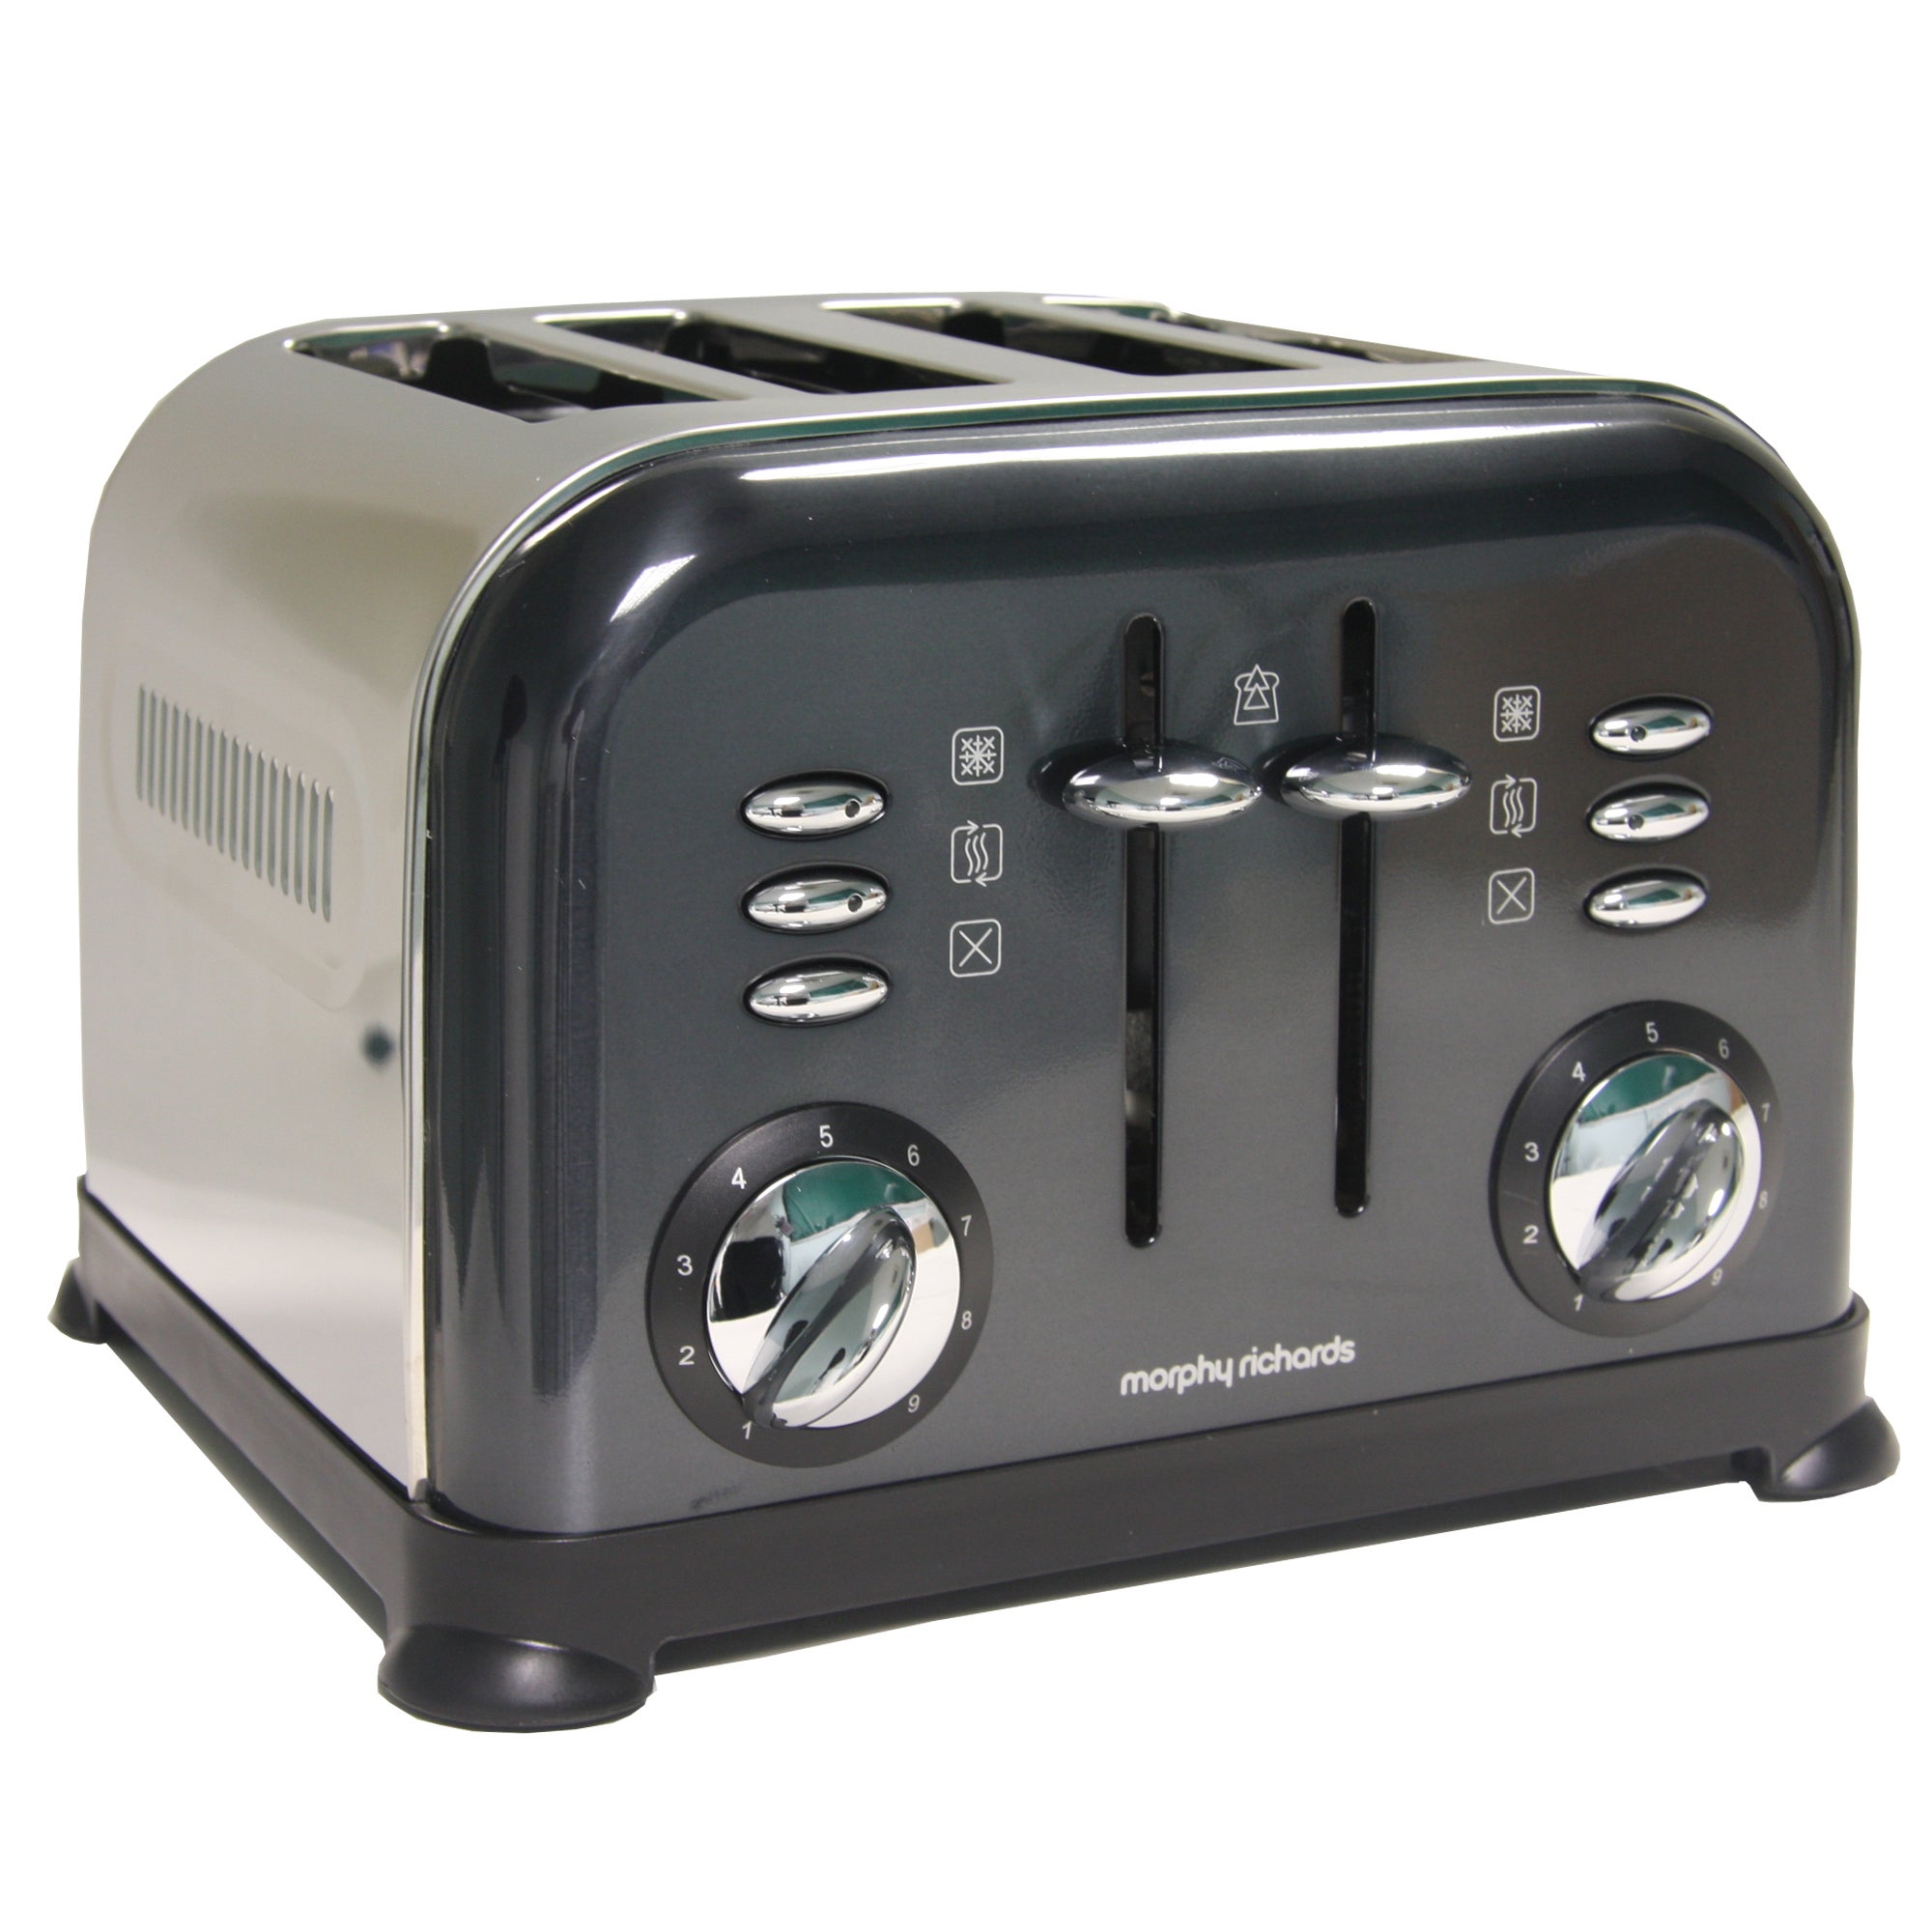 Morphy Richards Accents Black 4 Slice Toaster